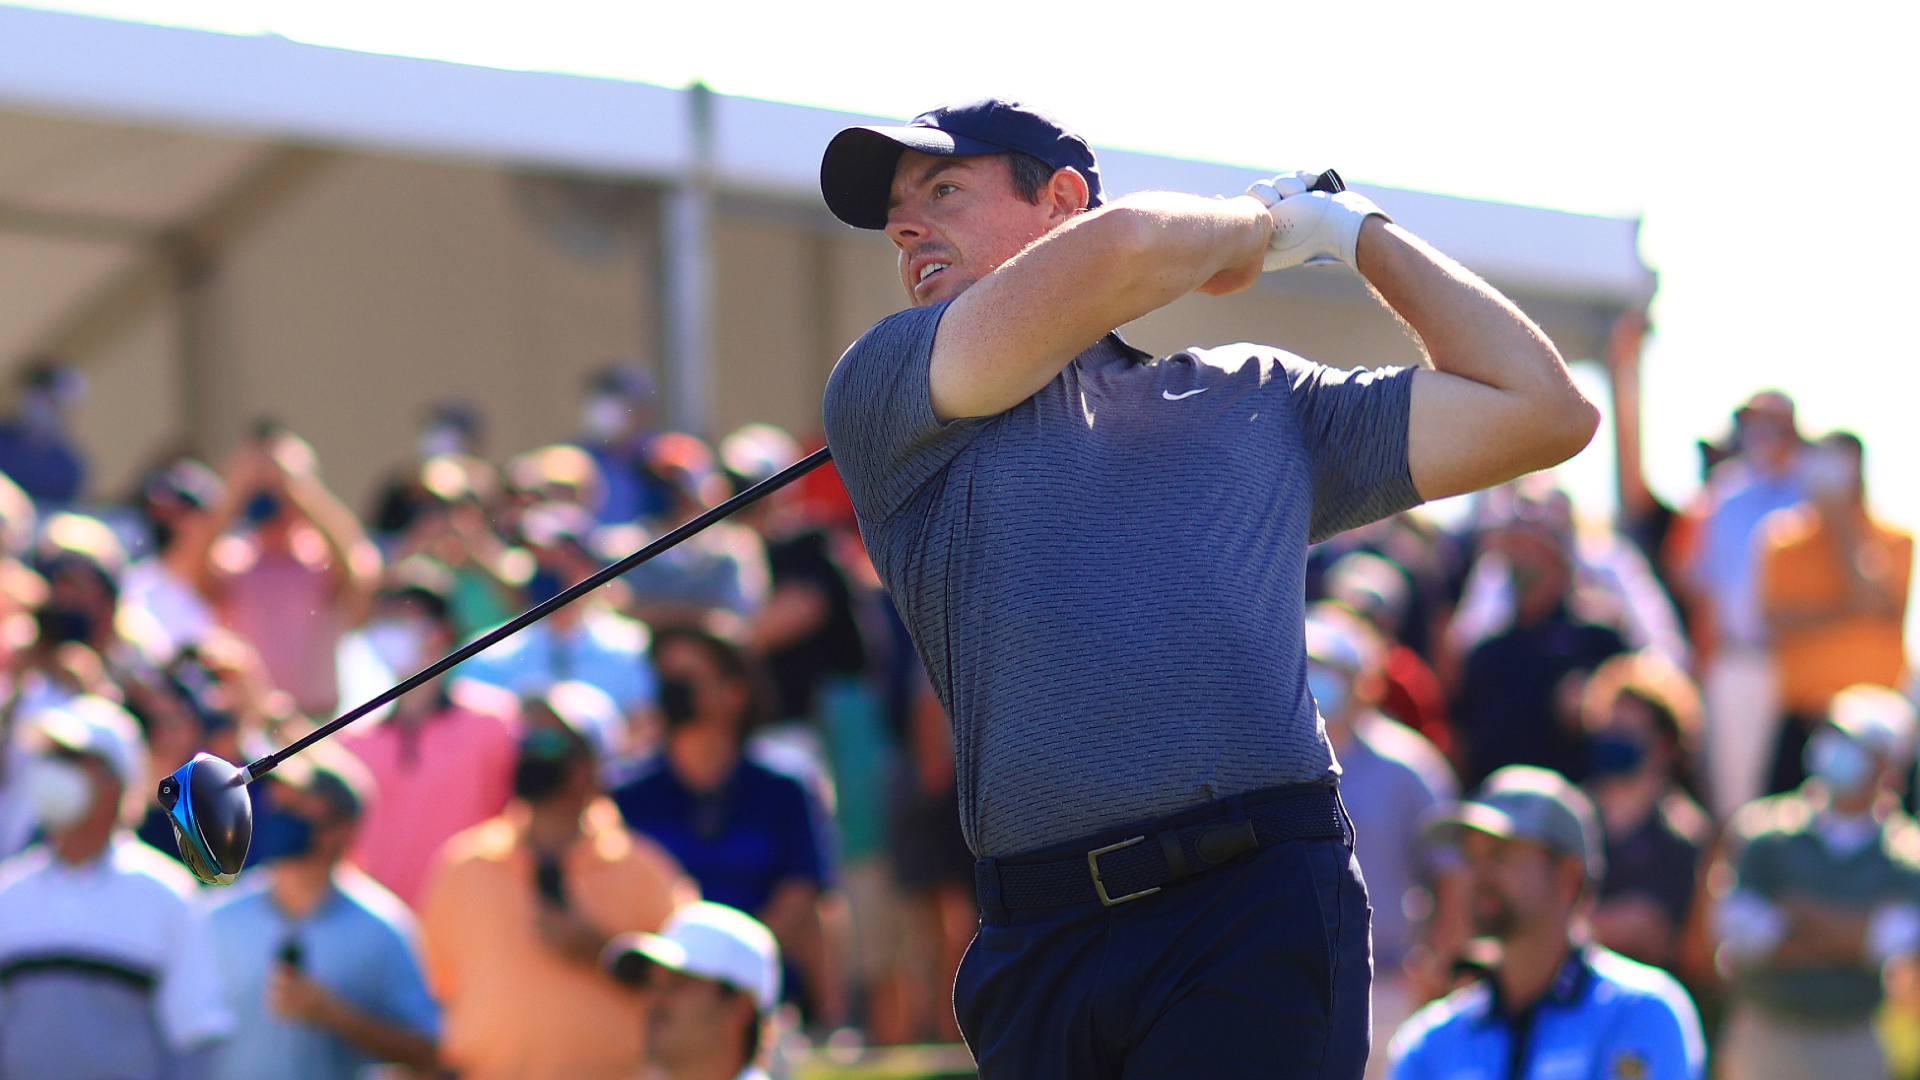 McIlroy gets sinking feeling in nightmare 79 at Players Championship